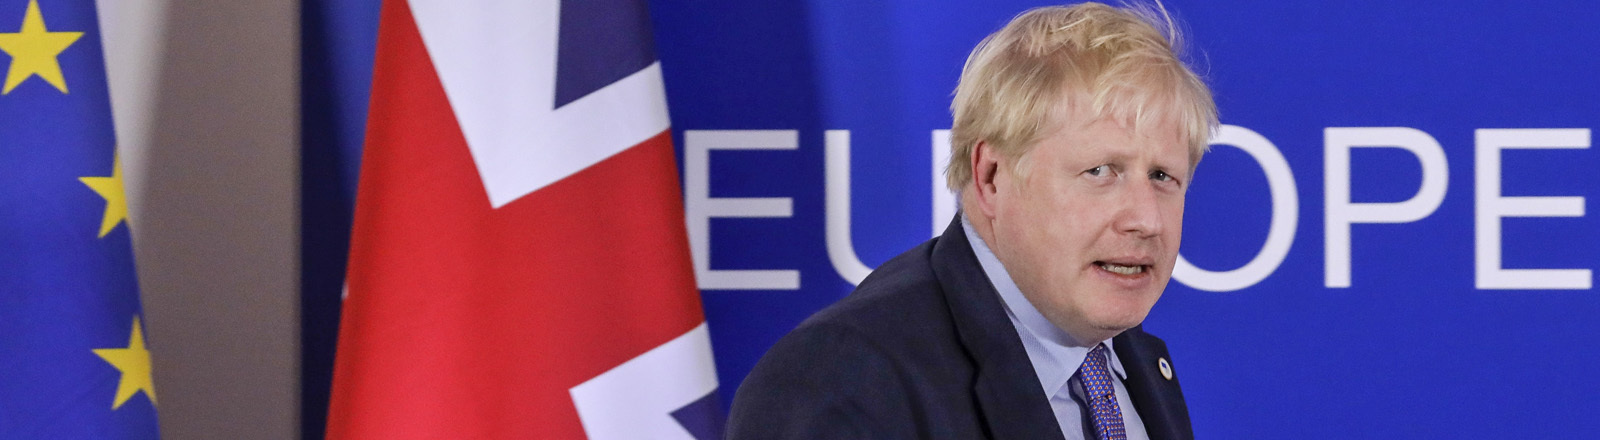 Boris Johnson in Brüssel am 17.10.2019